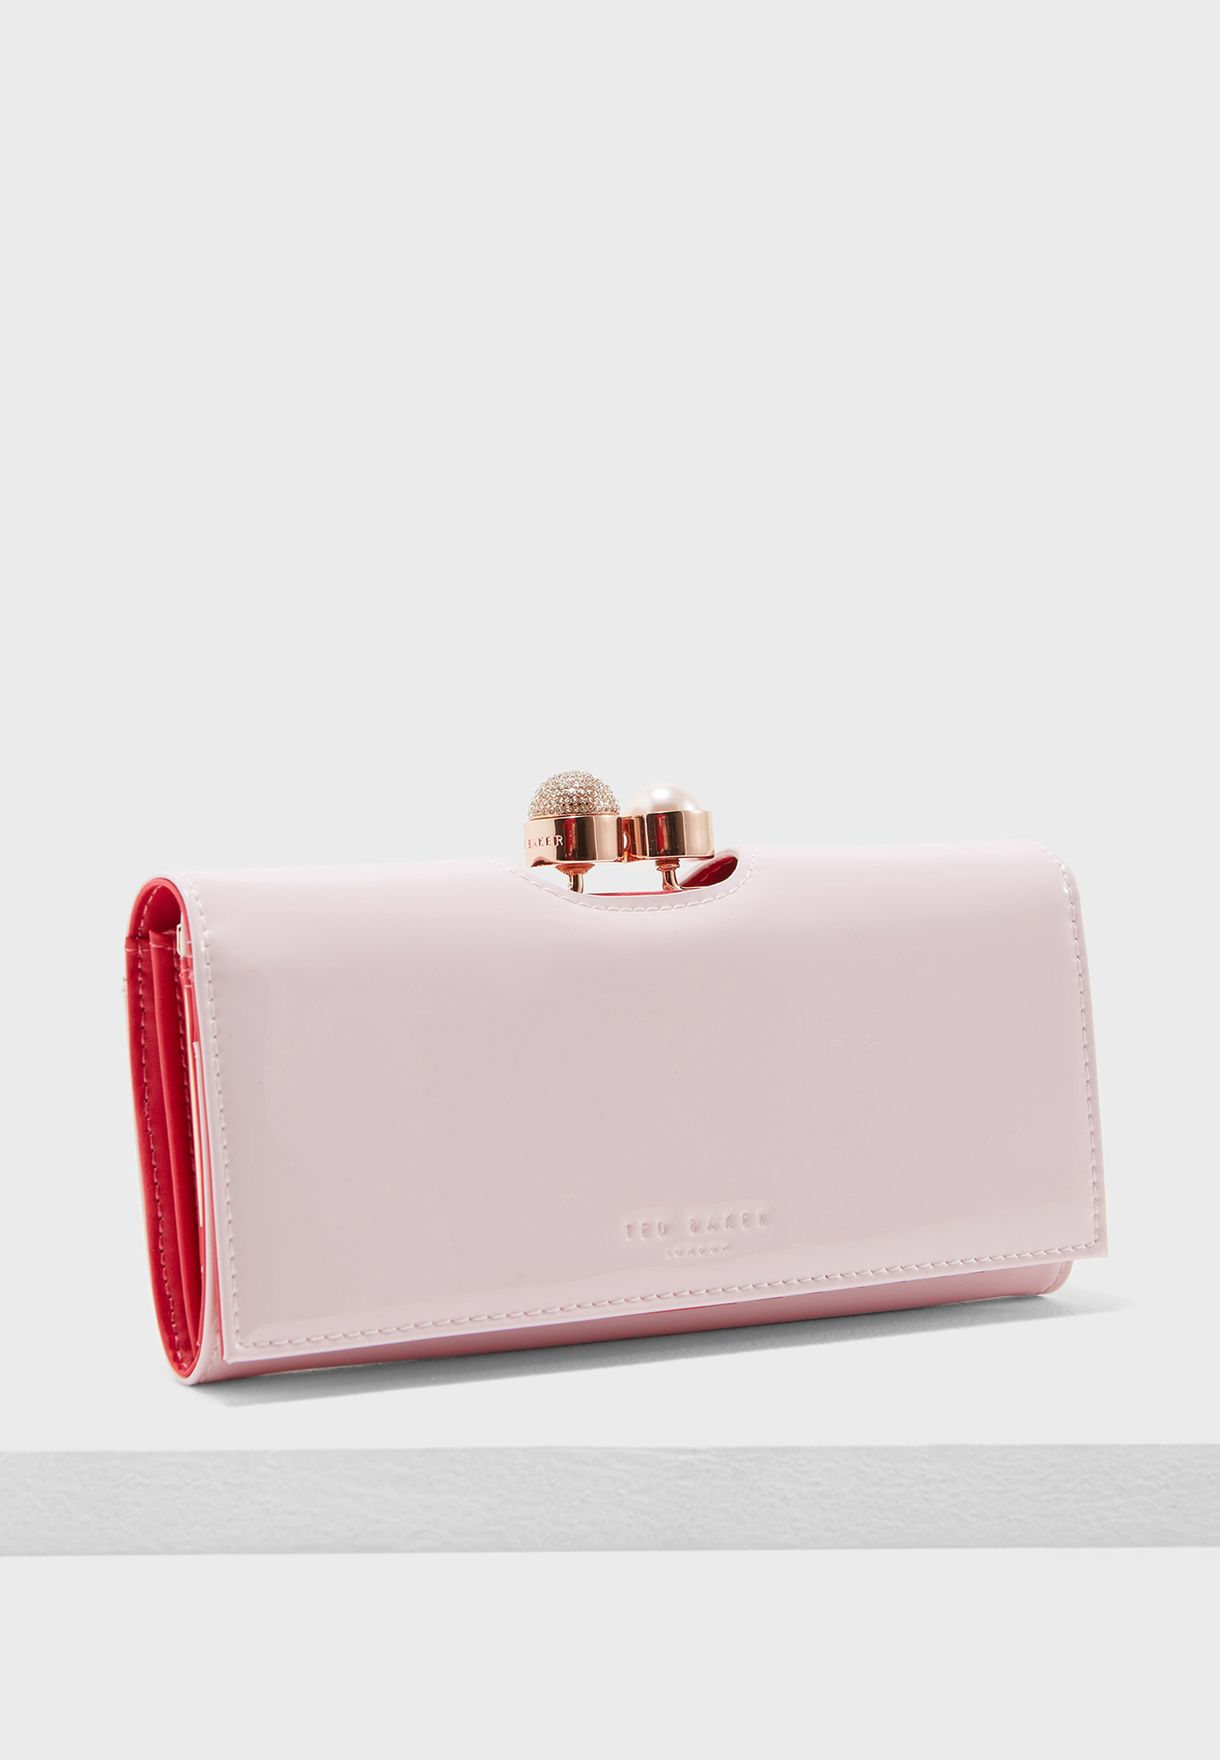 09a5a2b0988 Shop Ted baker pink Crystal Pearl Bobble Matinee Purse 138180XMID ...